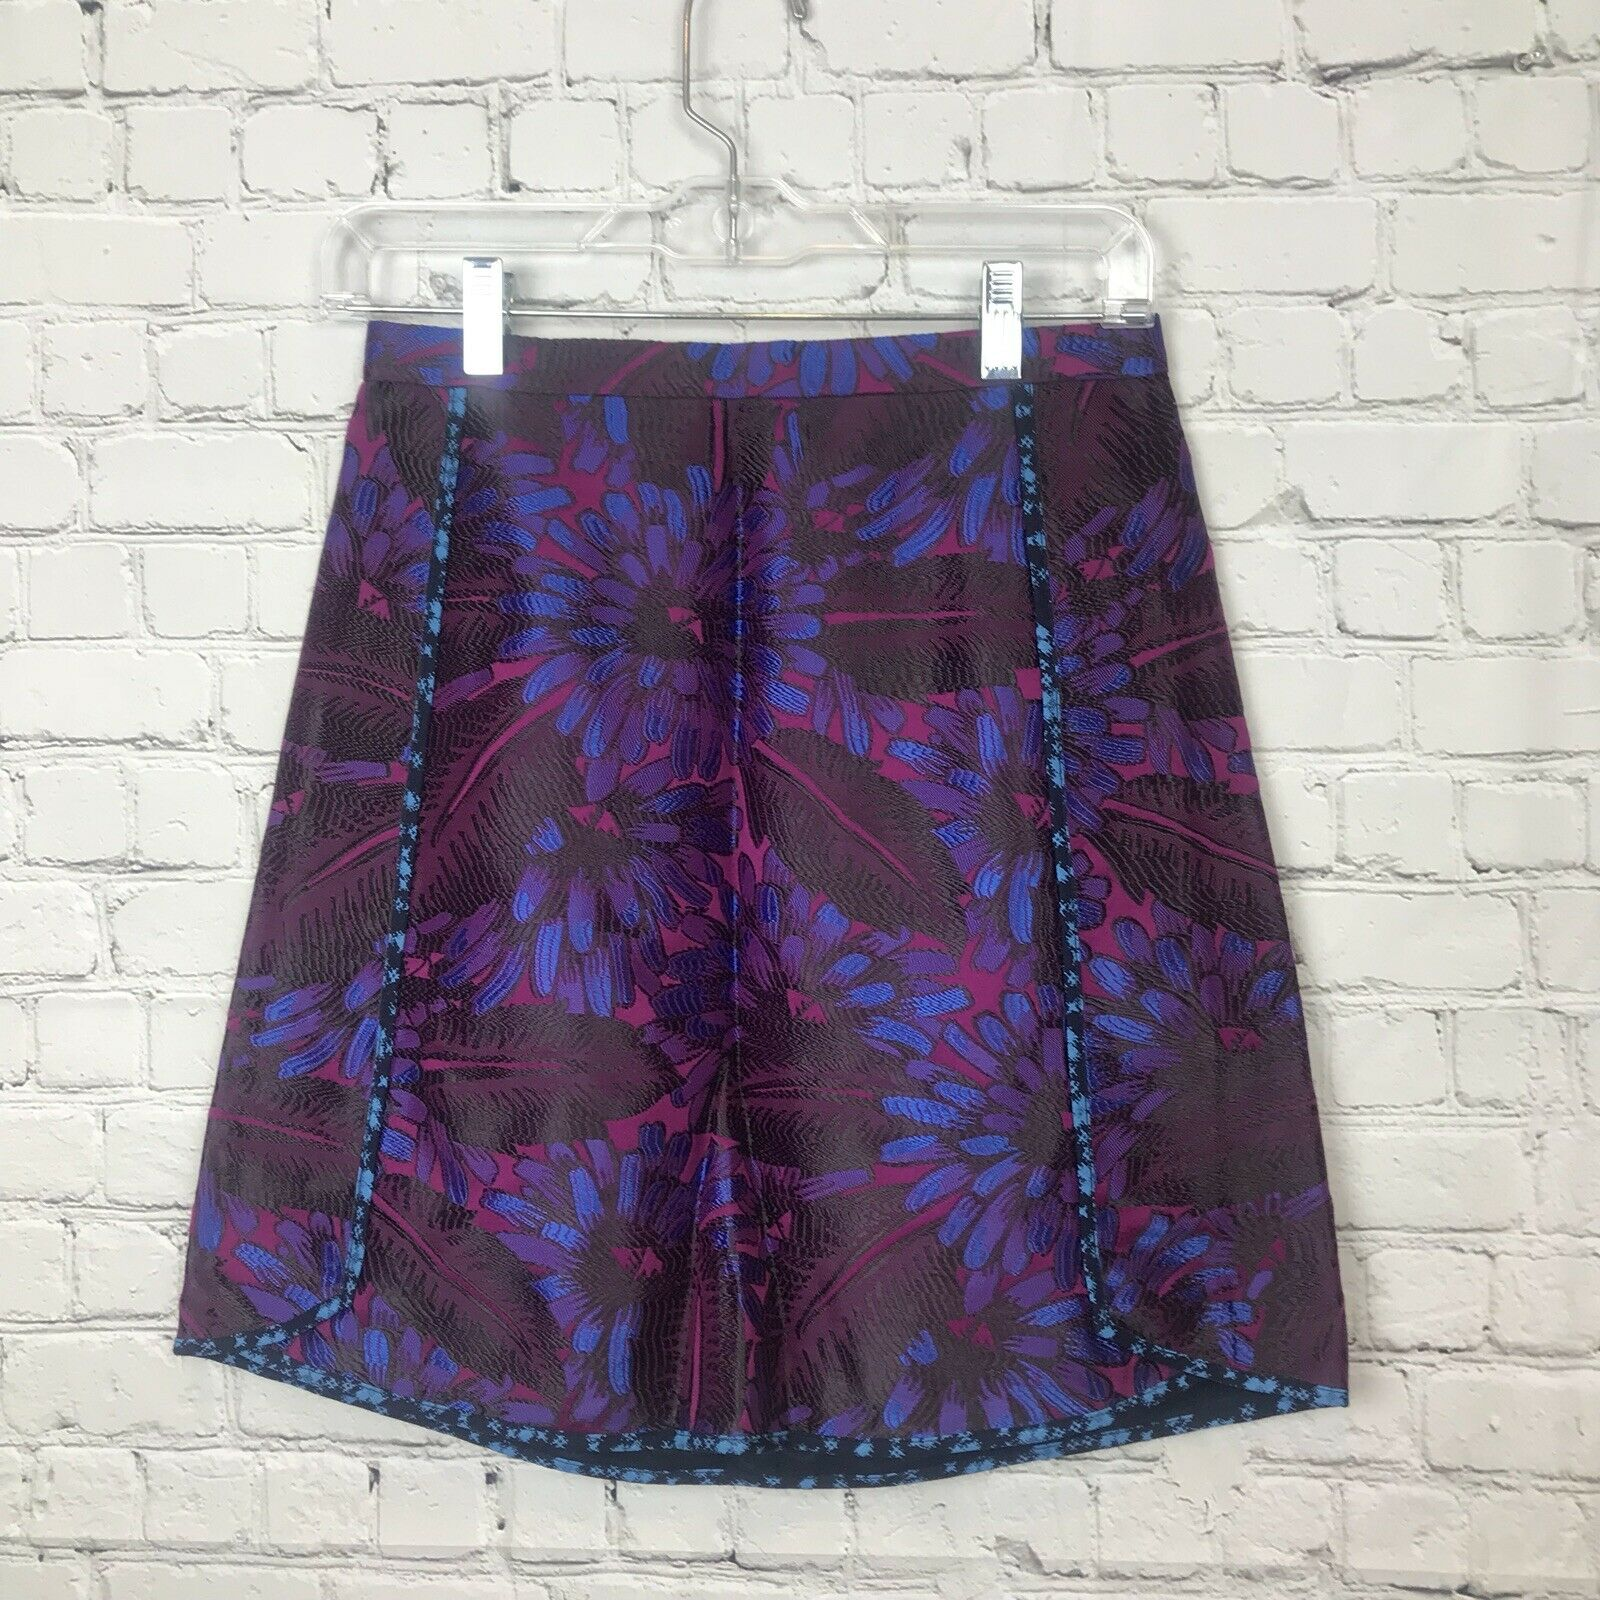 128 J.Crew A-Line Mini Skirt In Midnight Floral Jacquard Purple bluee 0 XS C5911